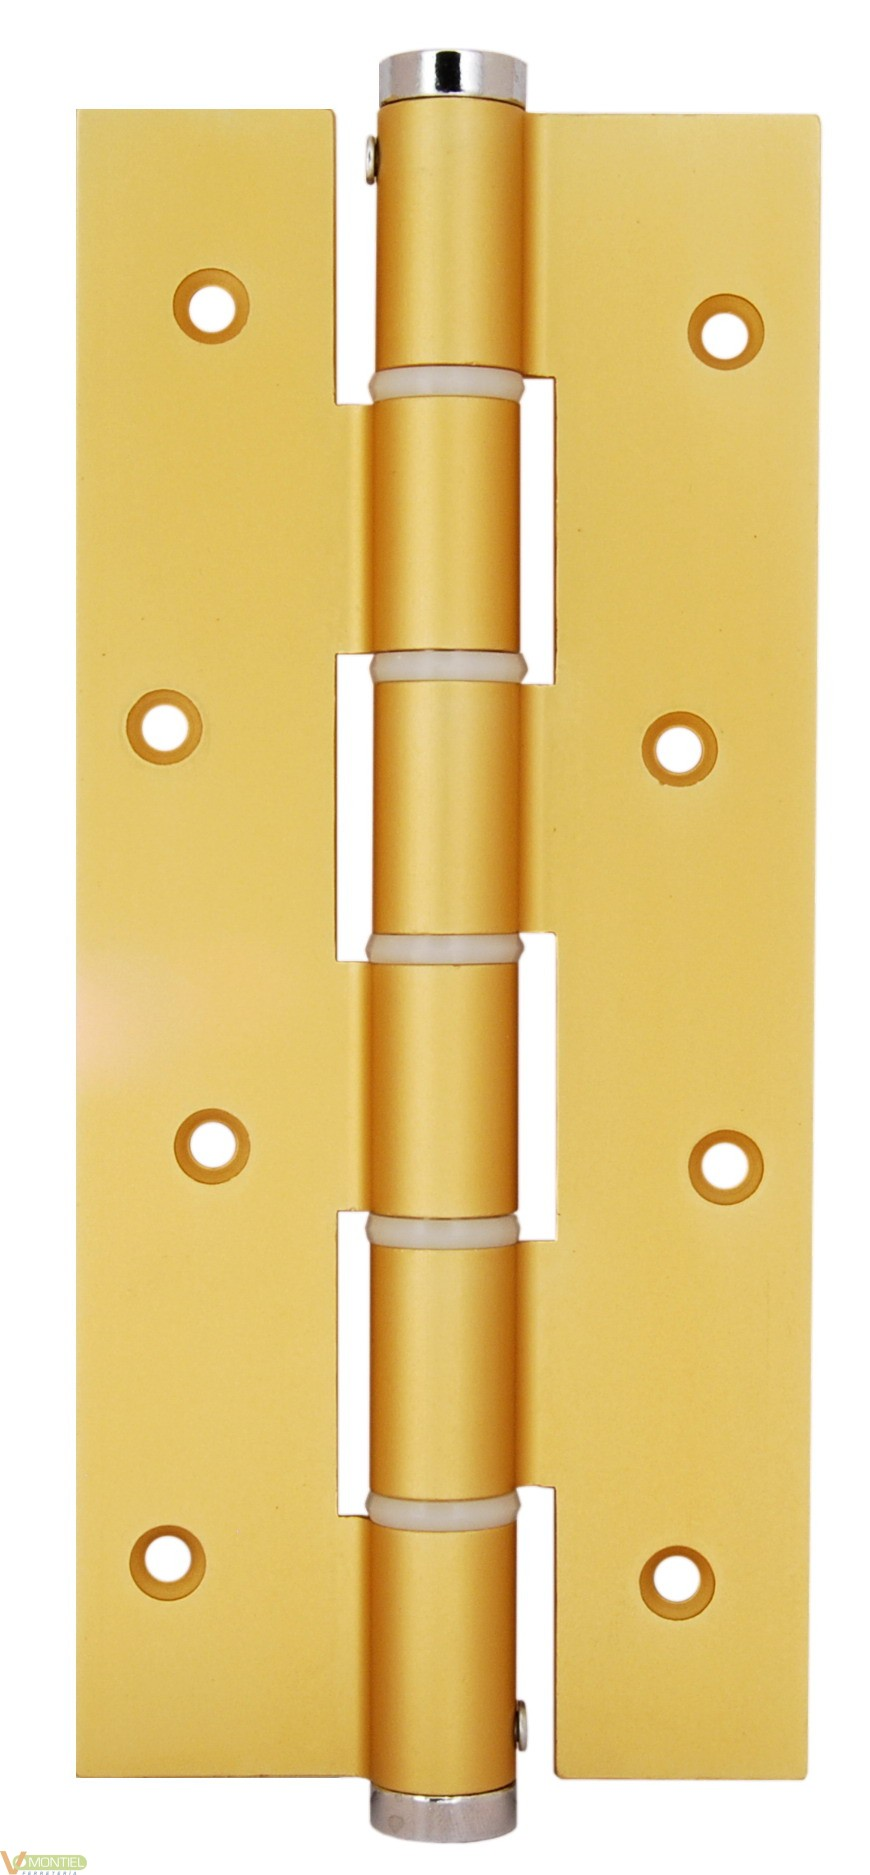 Bisagra s/acc 180mm oro 2 pz 5-0